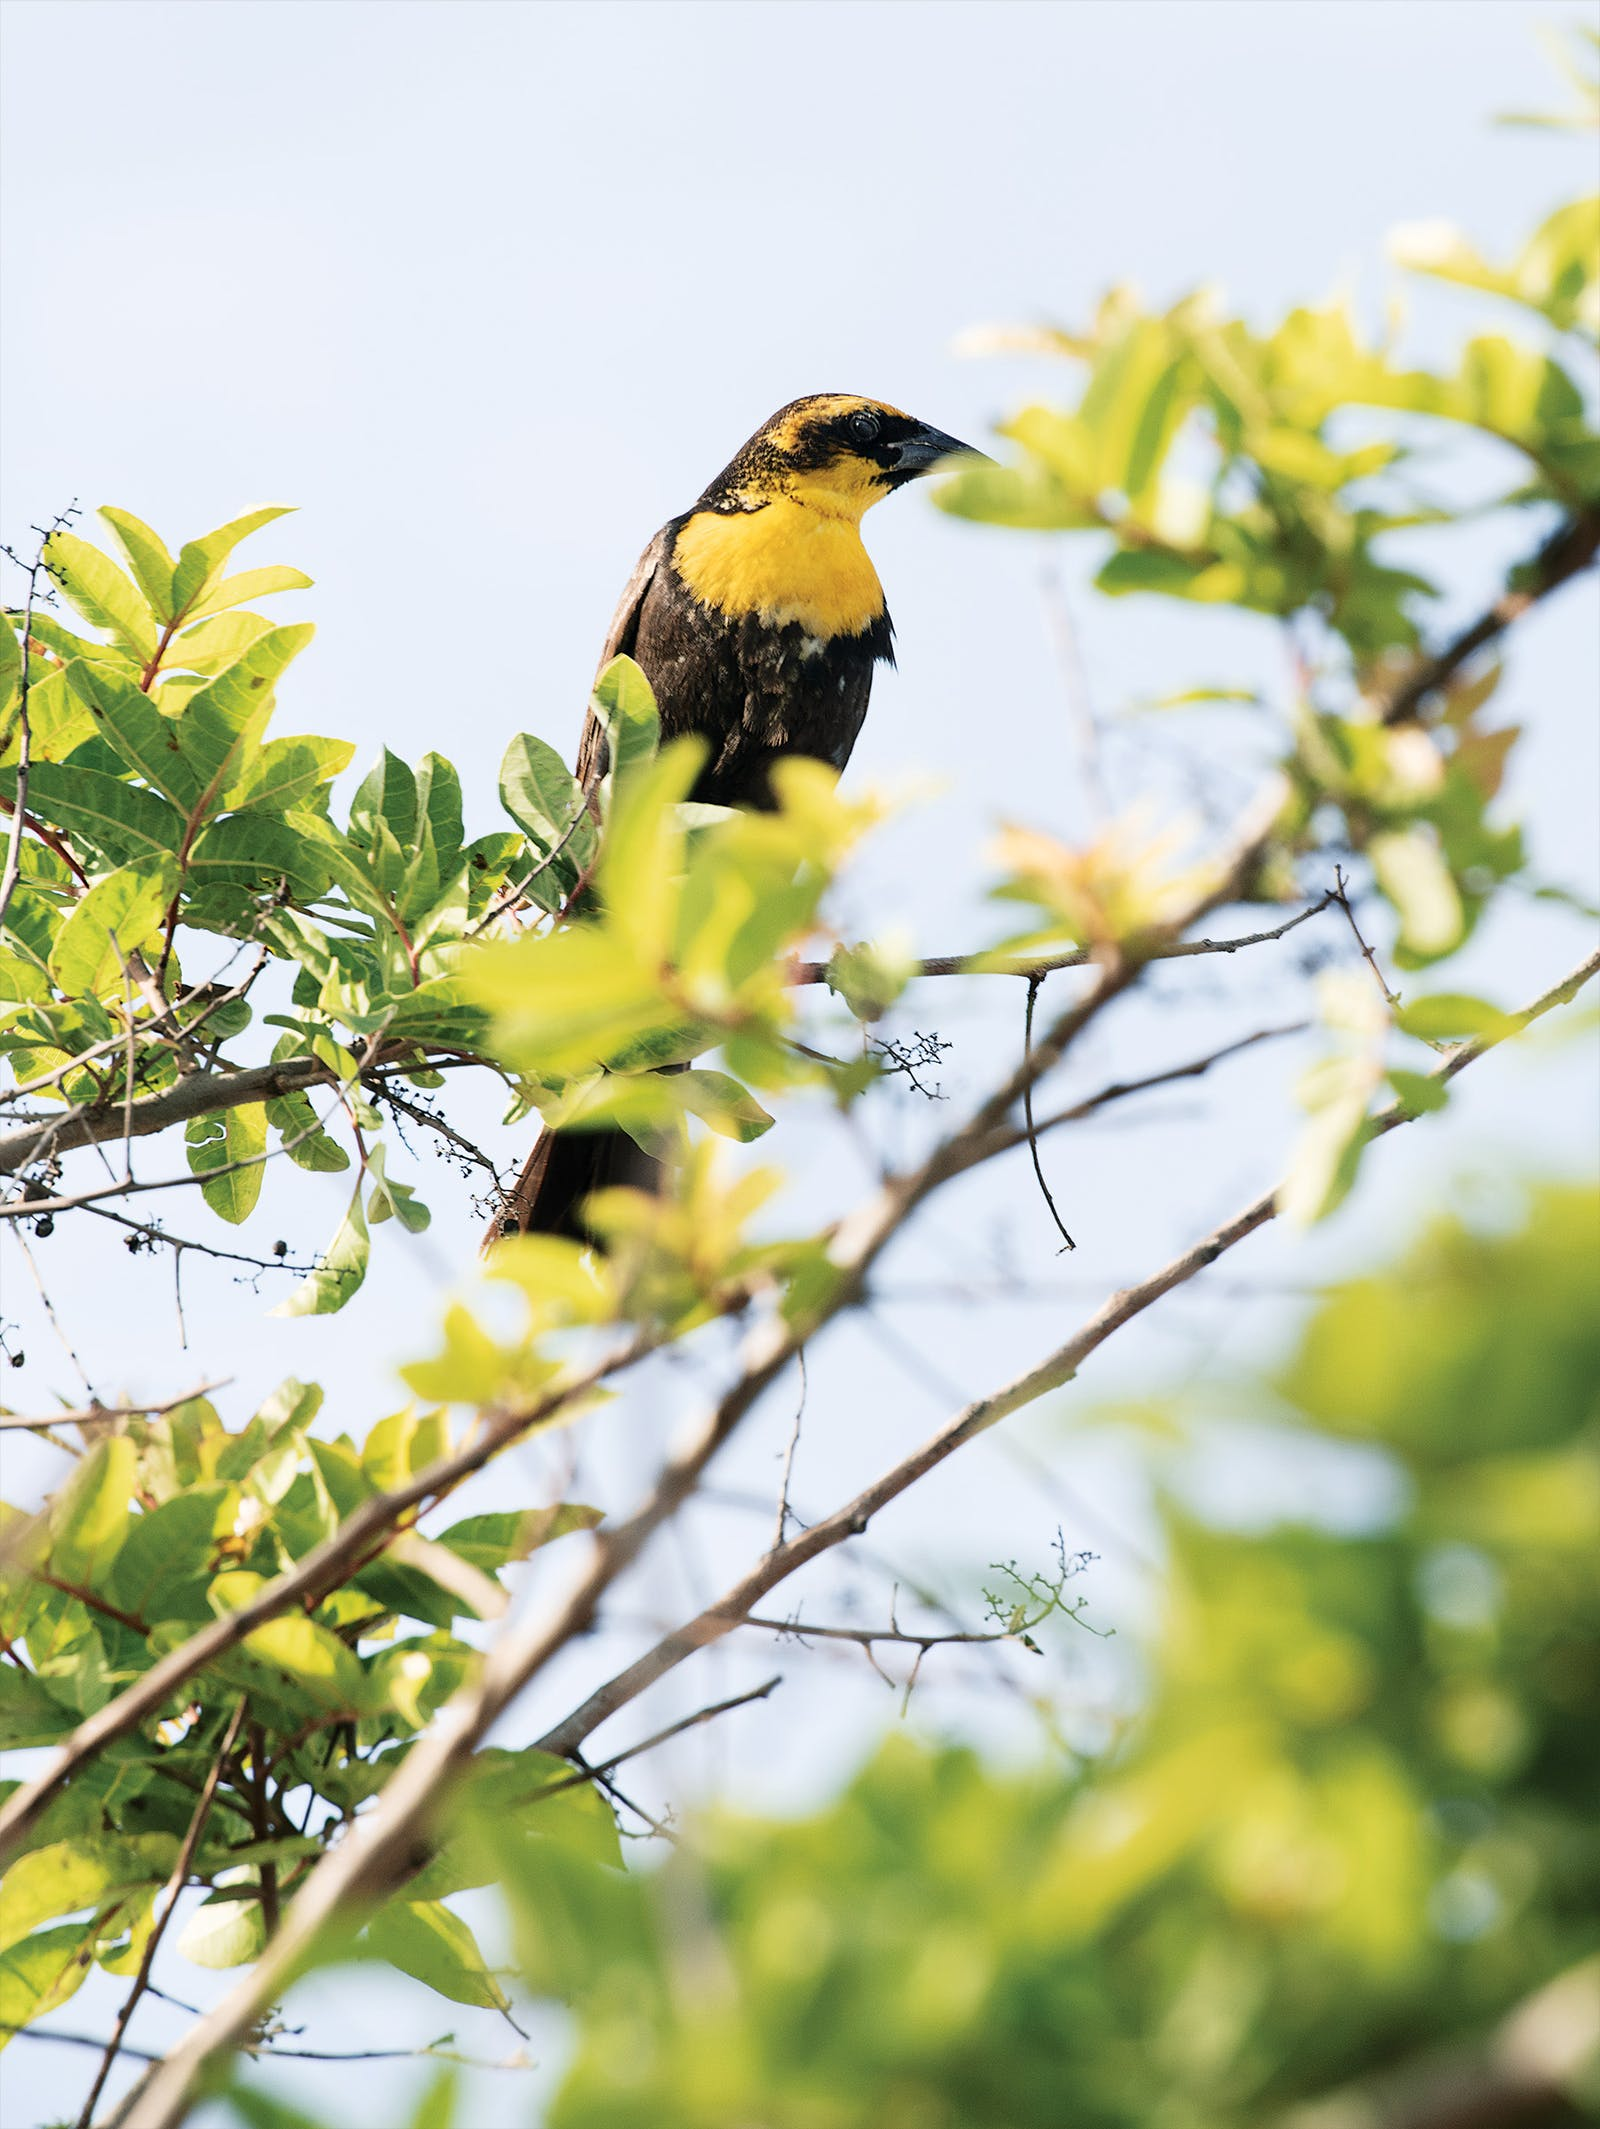 A yellow-headed blackbird spotted in Boca Chica.